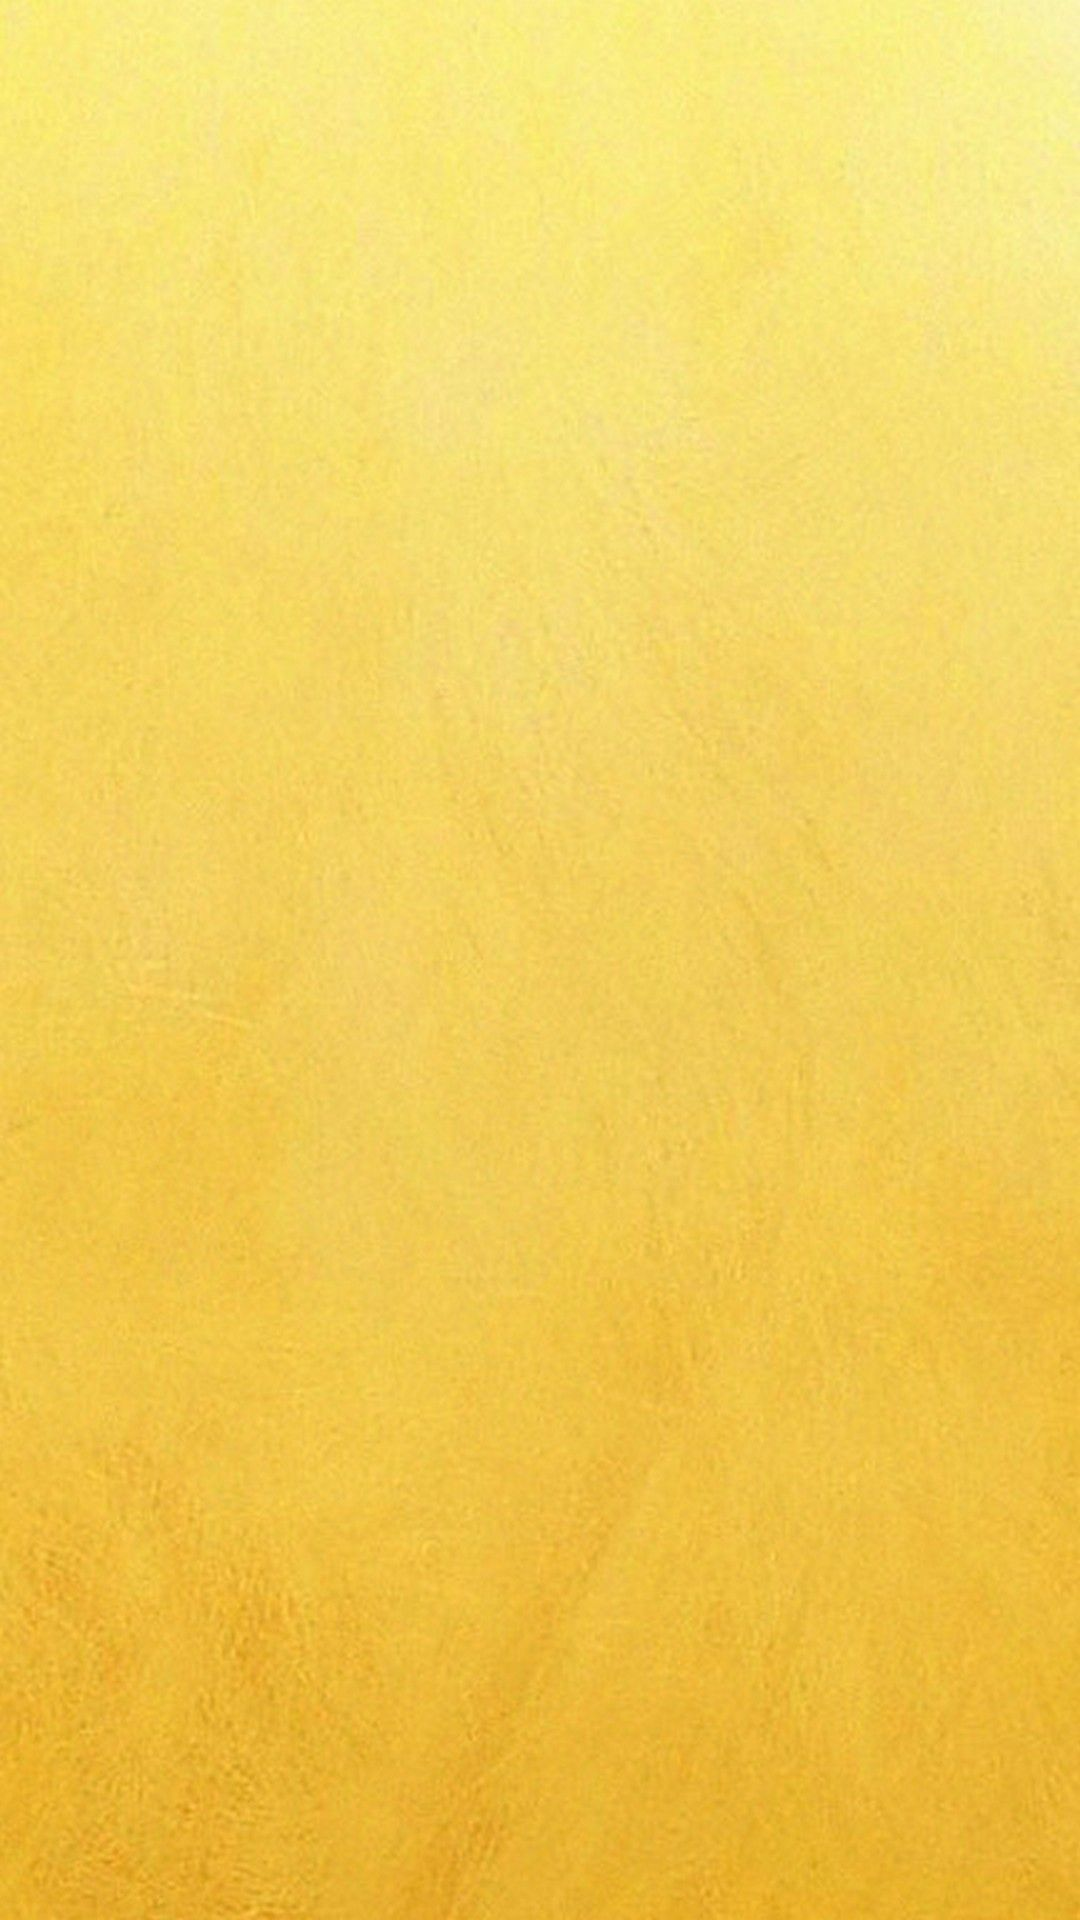 Wallpaper Iphone Plain Gold With Images Iphone Wallpaper